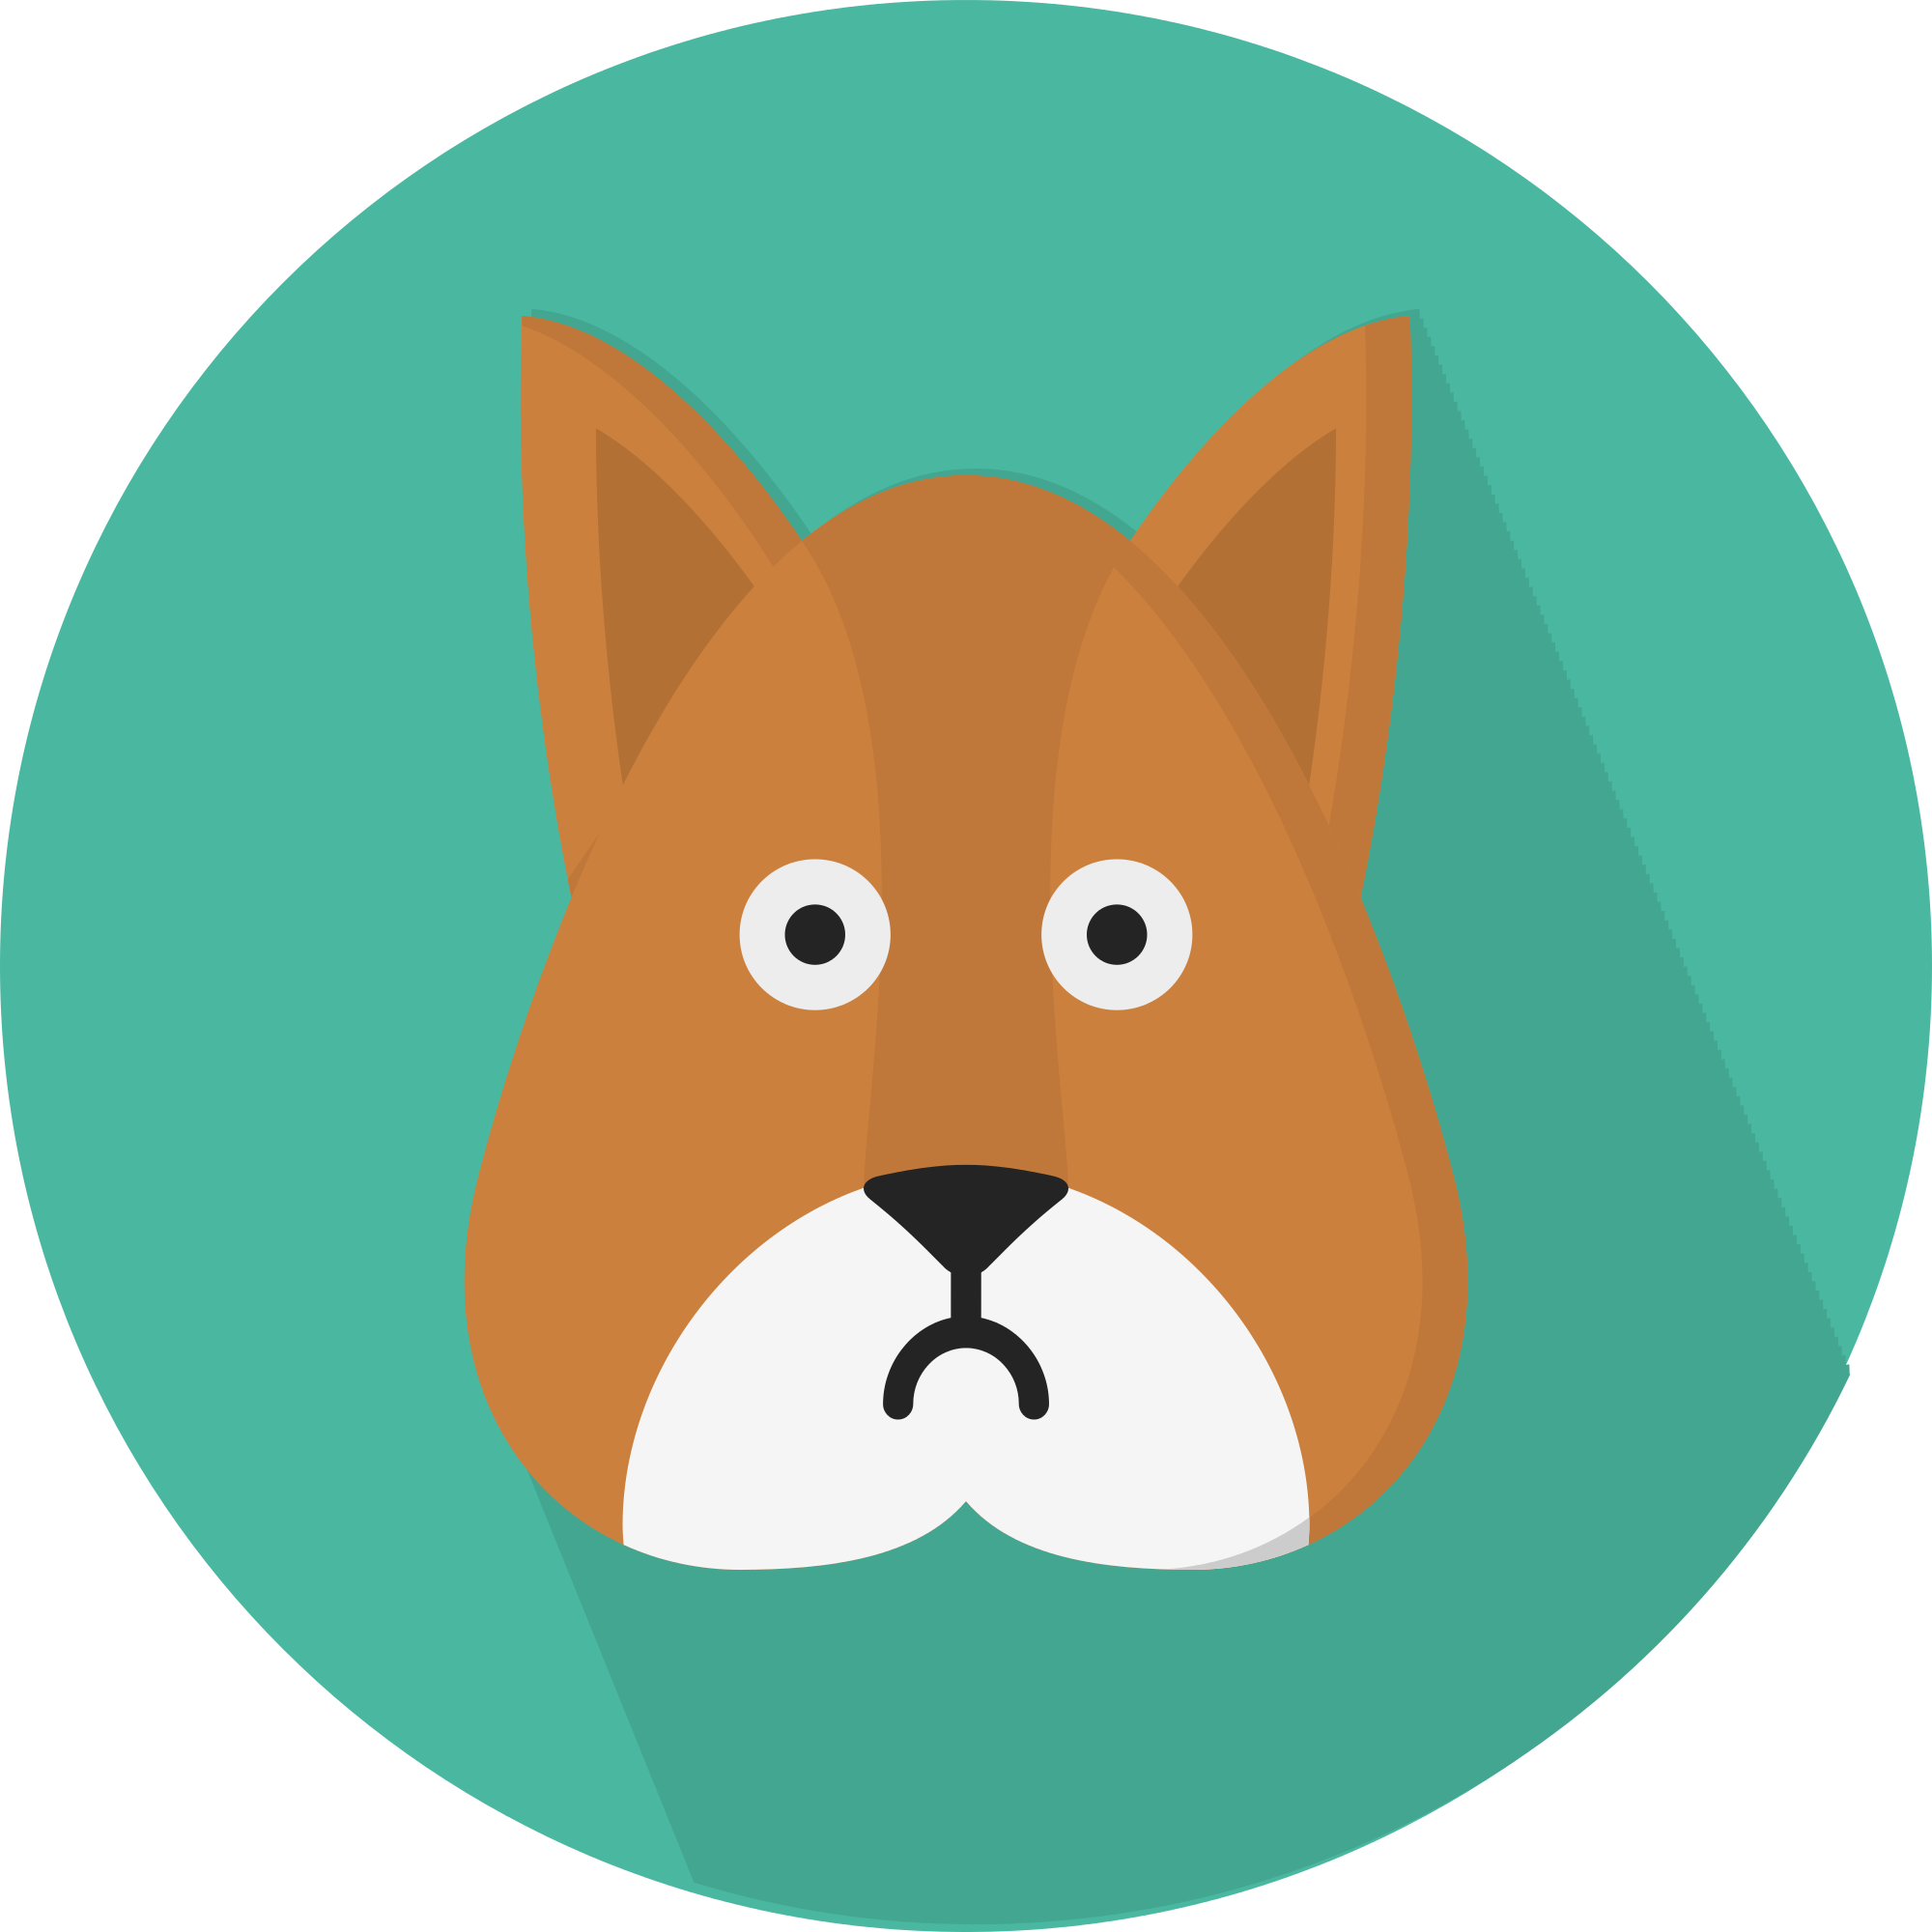 Squirrel svg #3, Download drawings